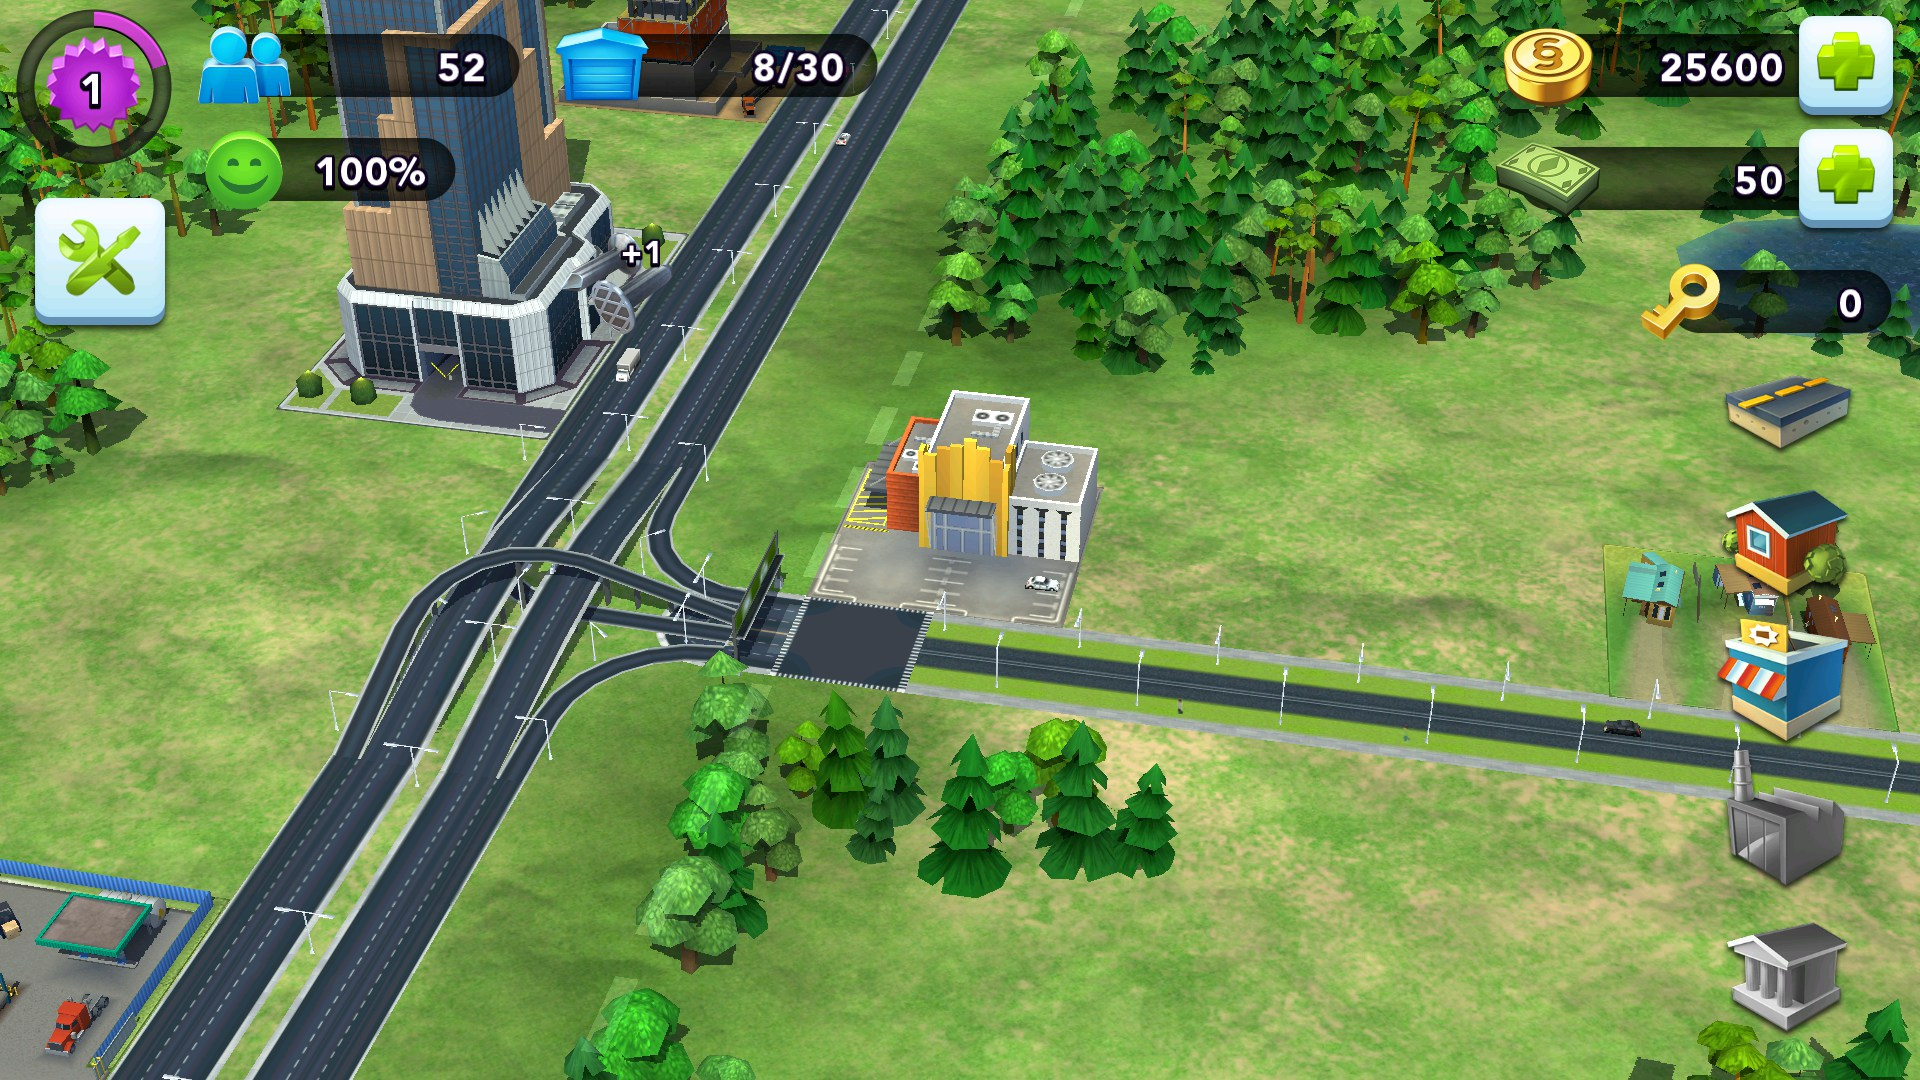 android games free download for samsung galaxy tab